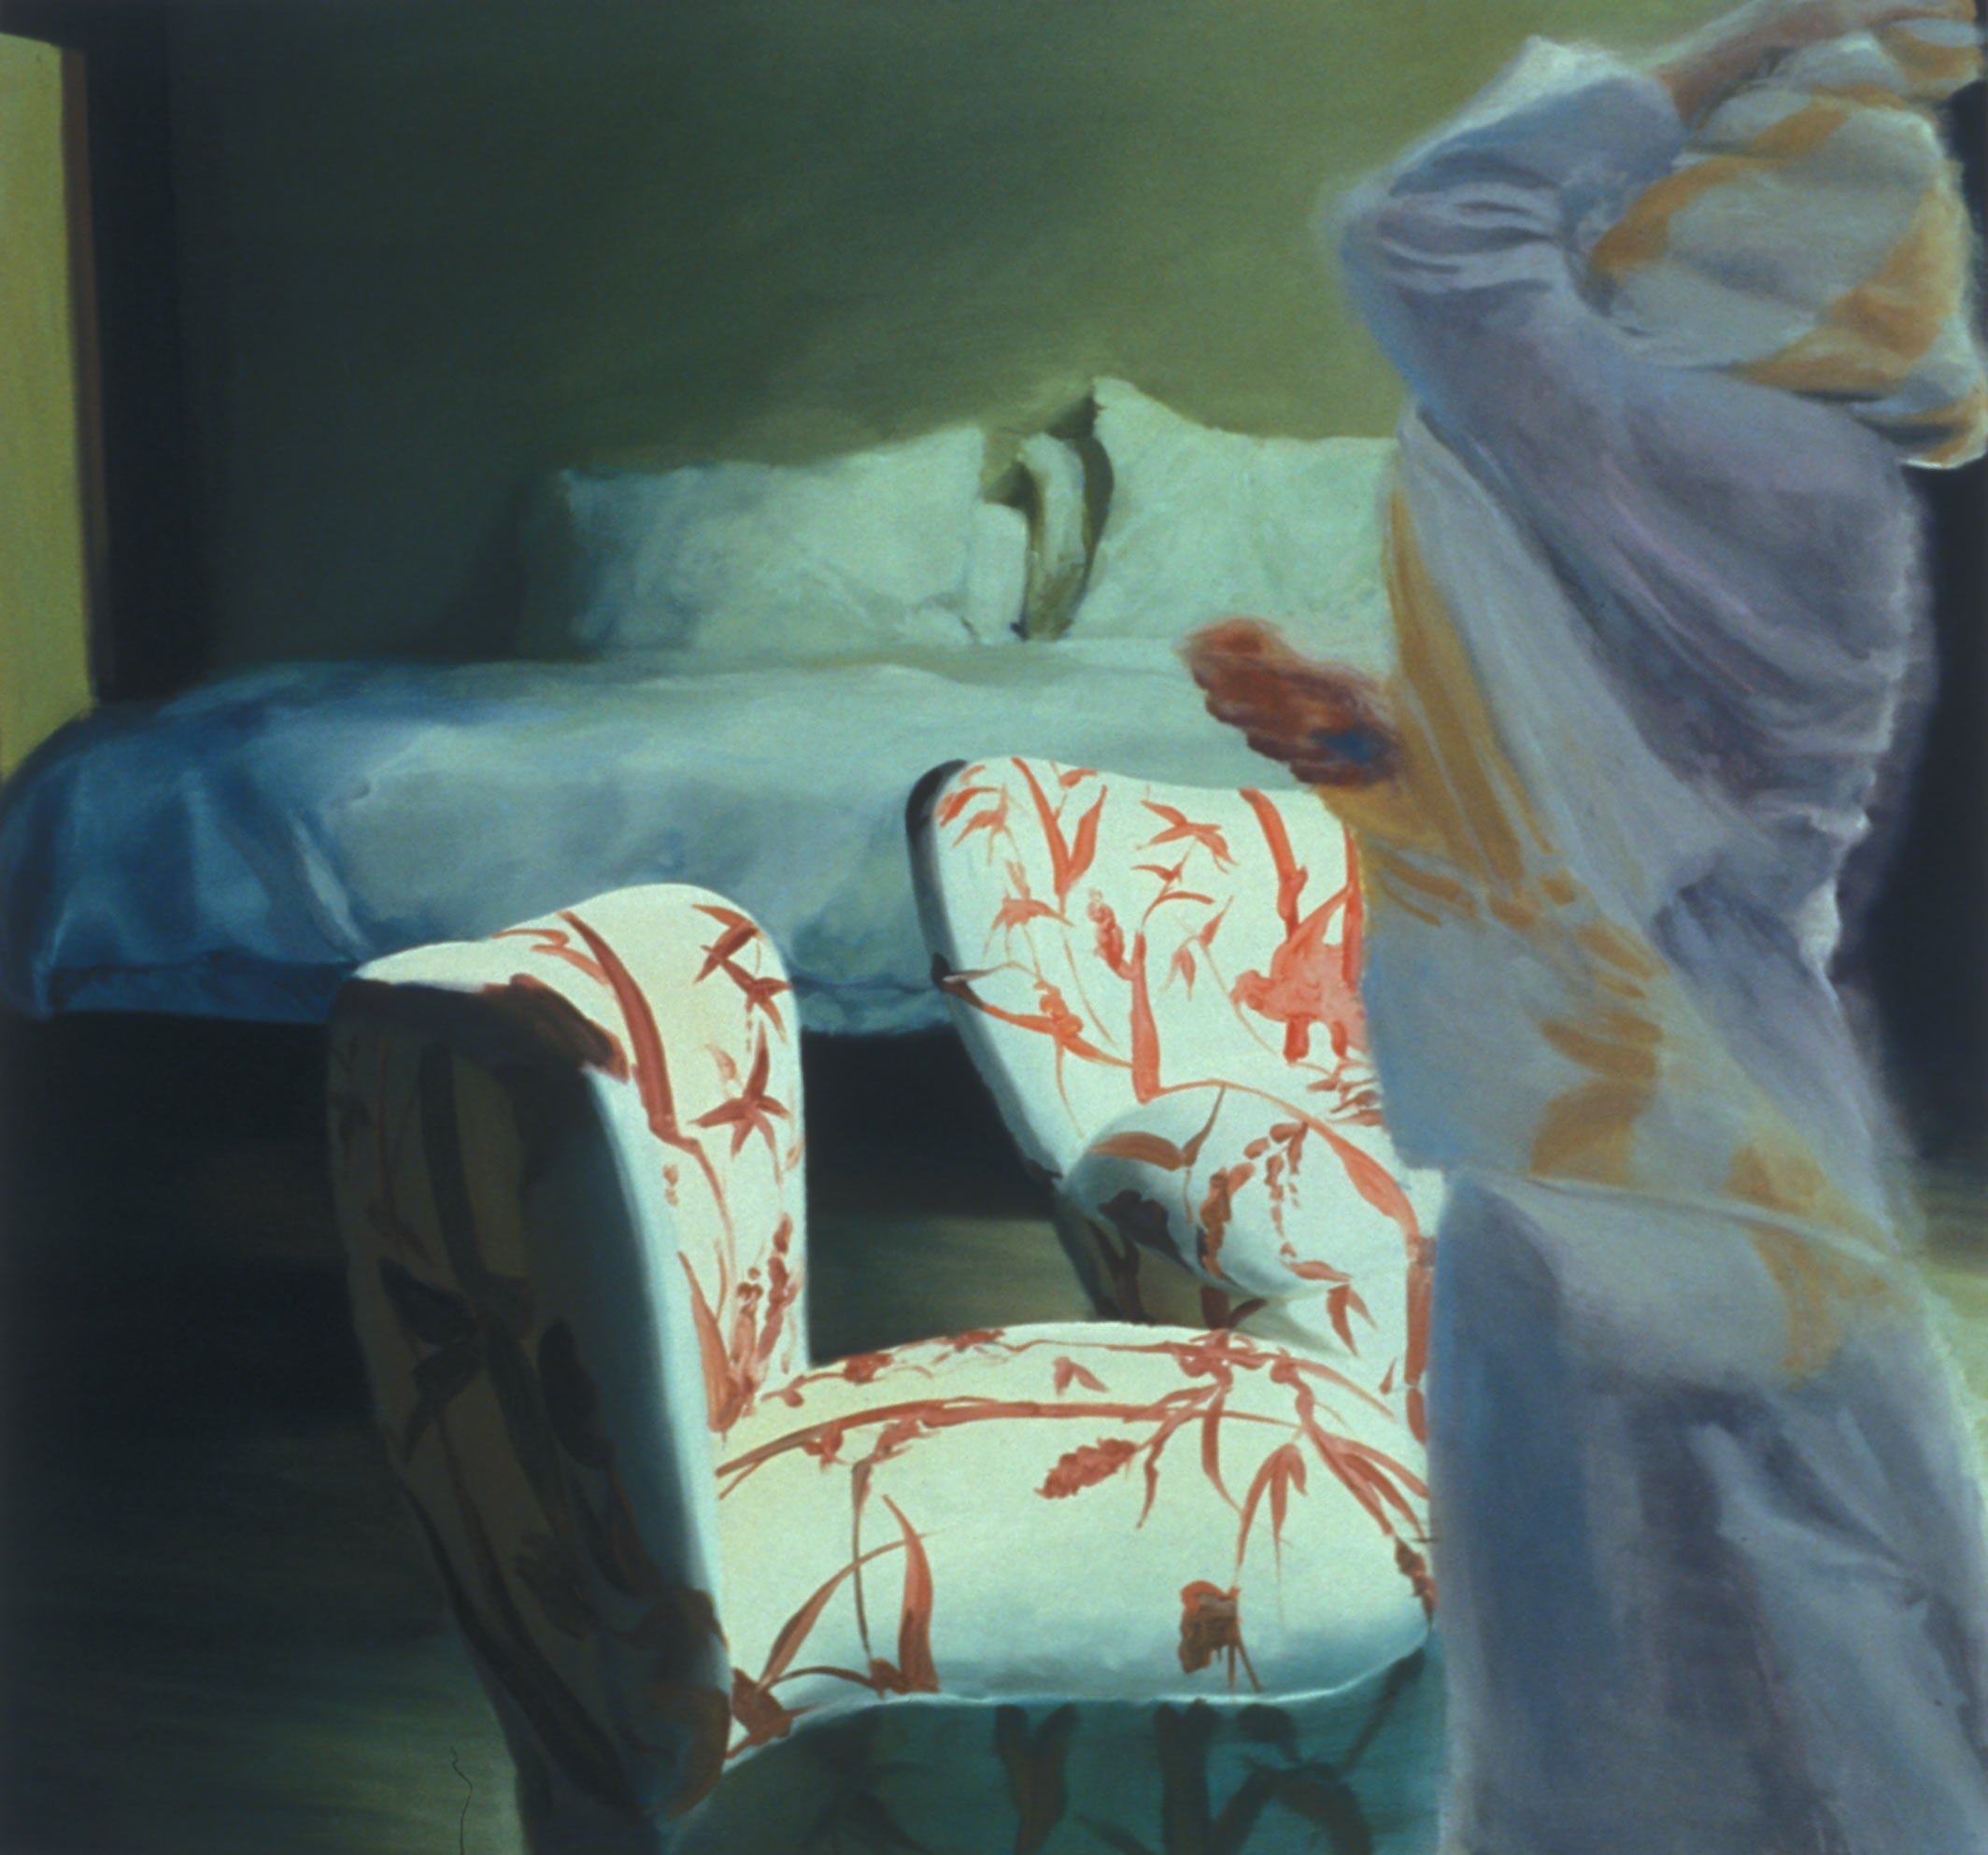 The Bed, The Chair, Crossing, 2000. Oil on linen. 69 x 74 in. (175 x 188 cm.)